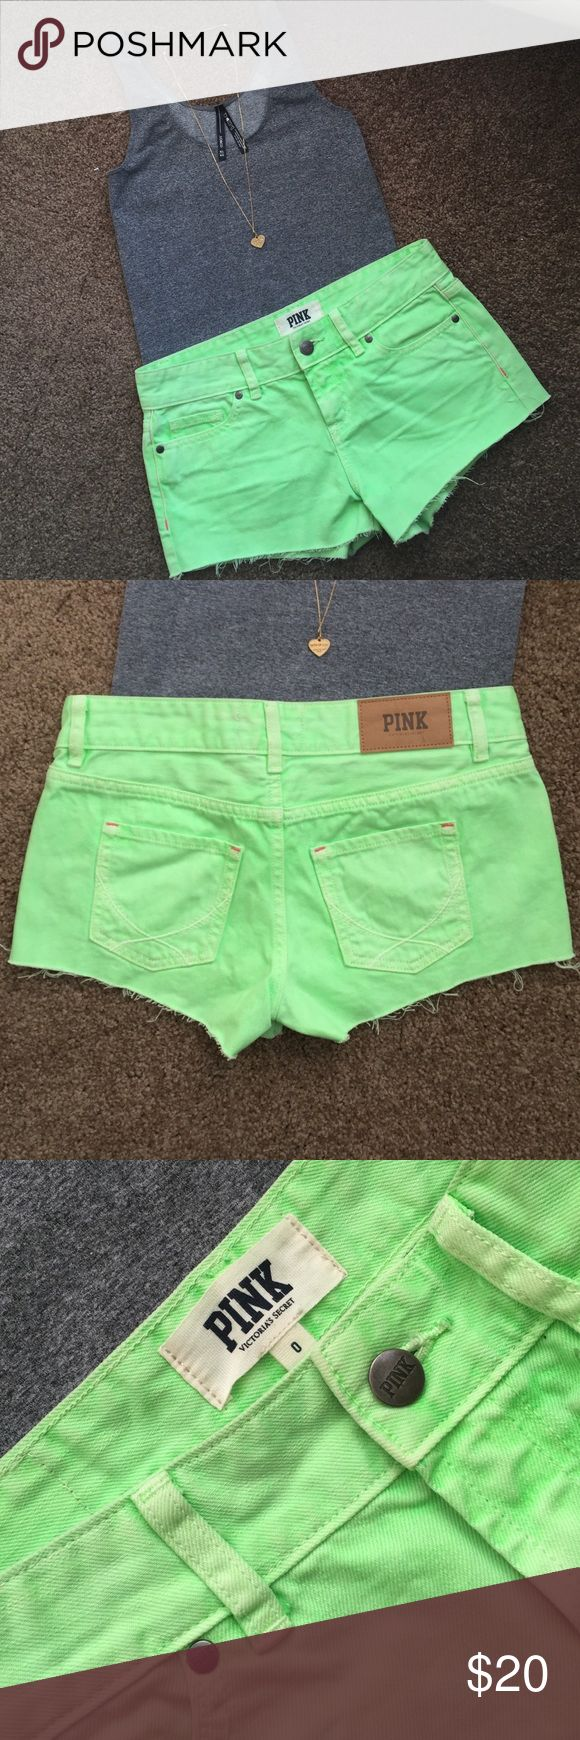 Victoria Secret Neon Green Shorts Worn VS Pink brand neon green shorts. Add a fun pop of color to any outfit. Great for summer time. Small pen mark on bottom left of shorts. In good condition. Victoria's Secret Shorts Jean Shorts